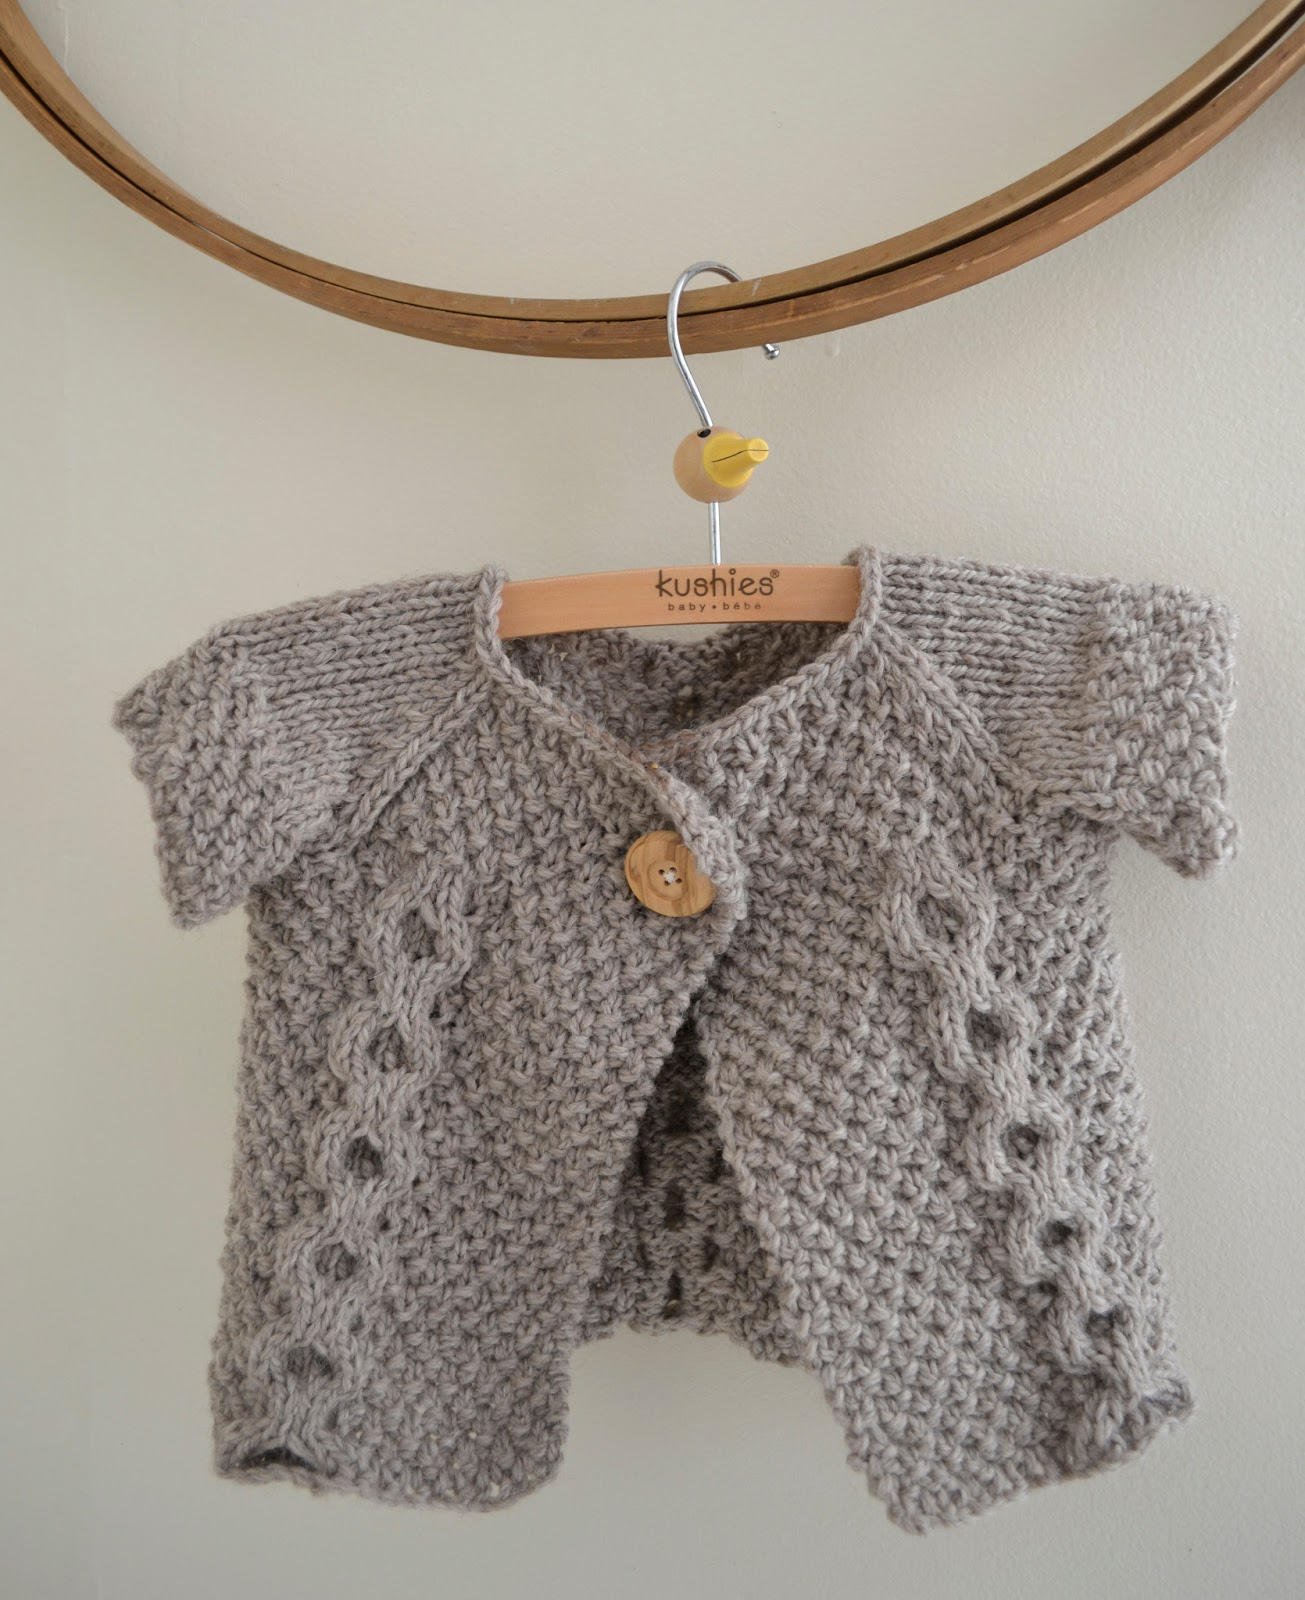 Sweater Knitting Patterns Free : Baby Sweater Knitting Pattern A Knitting Blog